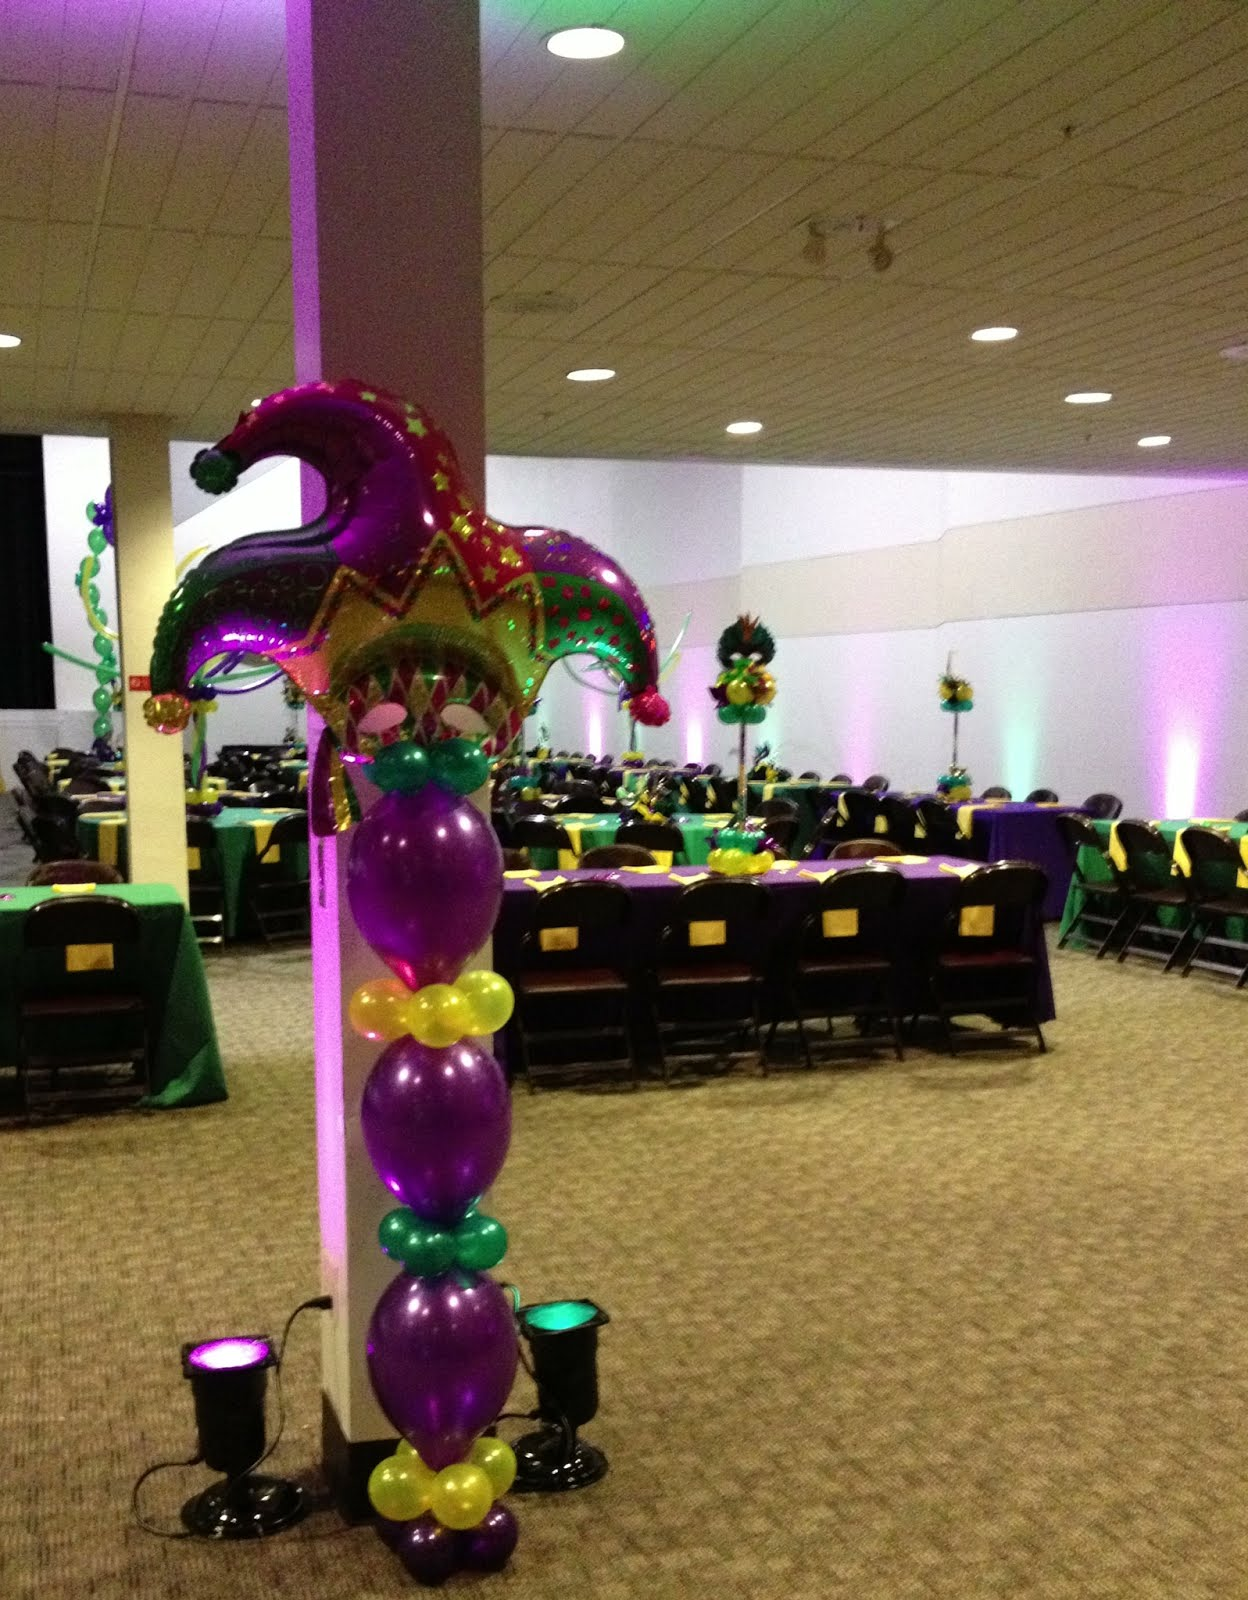 Party people event decorating company mardi gras awards banquet 2012 as employees walked into the room green and purple uplights gave a nice glow mardi gras foil topper on linking balloons bring color to the space amipublicfo Images